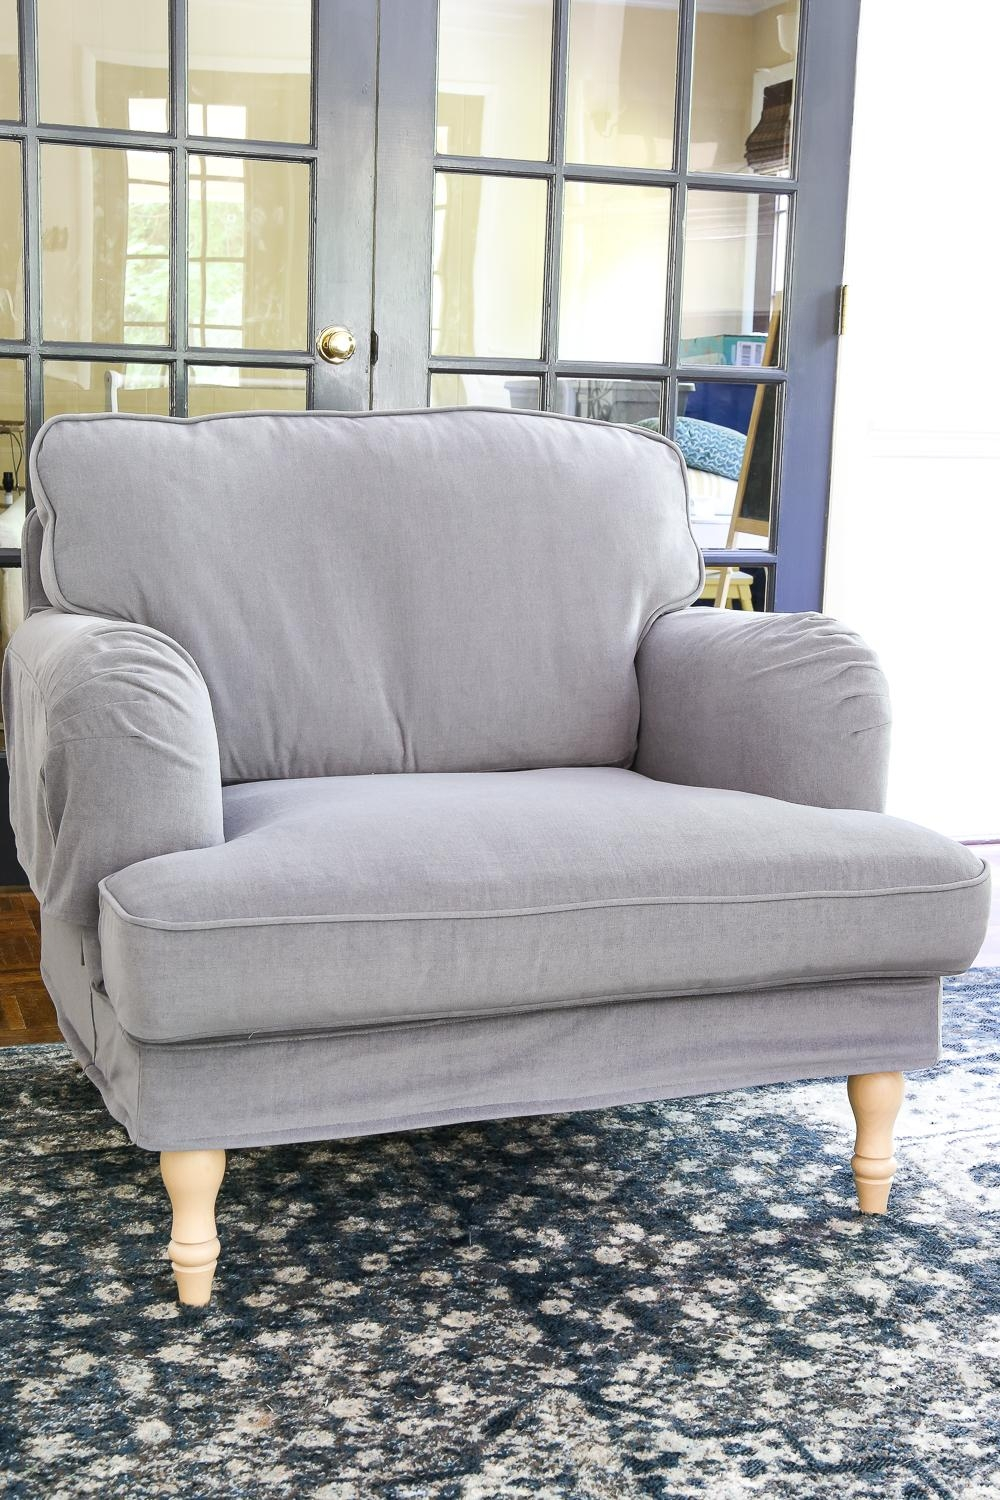 Ikea's New Sofa And Chairs And How To Keep Them Clean – Bless'er House In Sofa Chairs Ikea (Image 12 of 20)